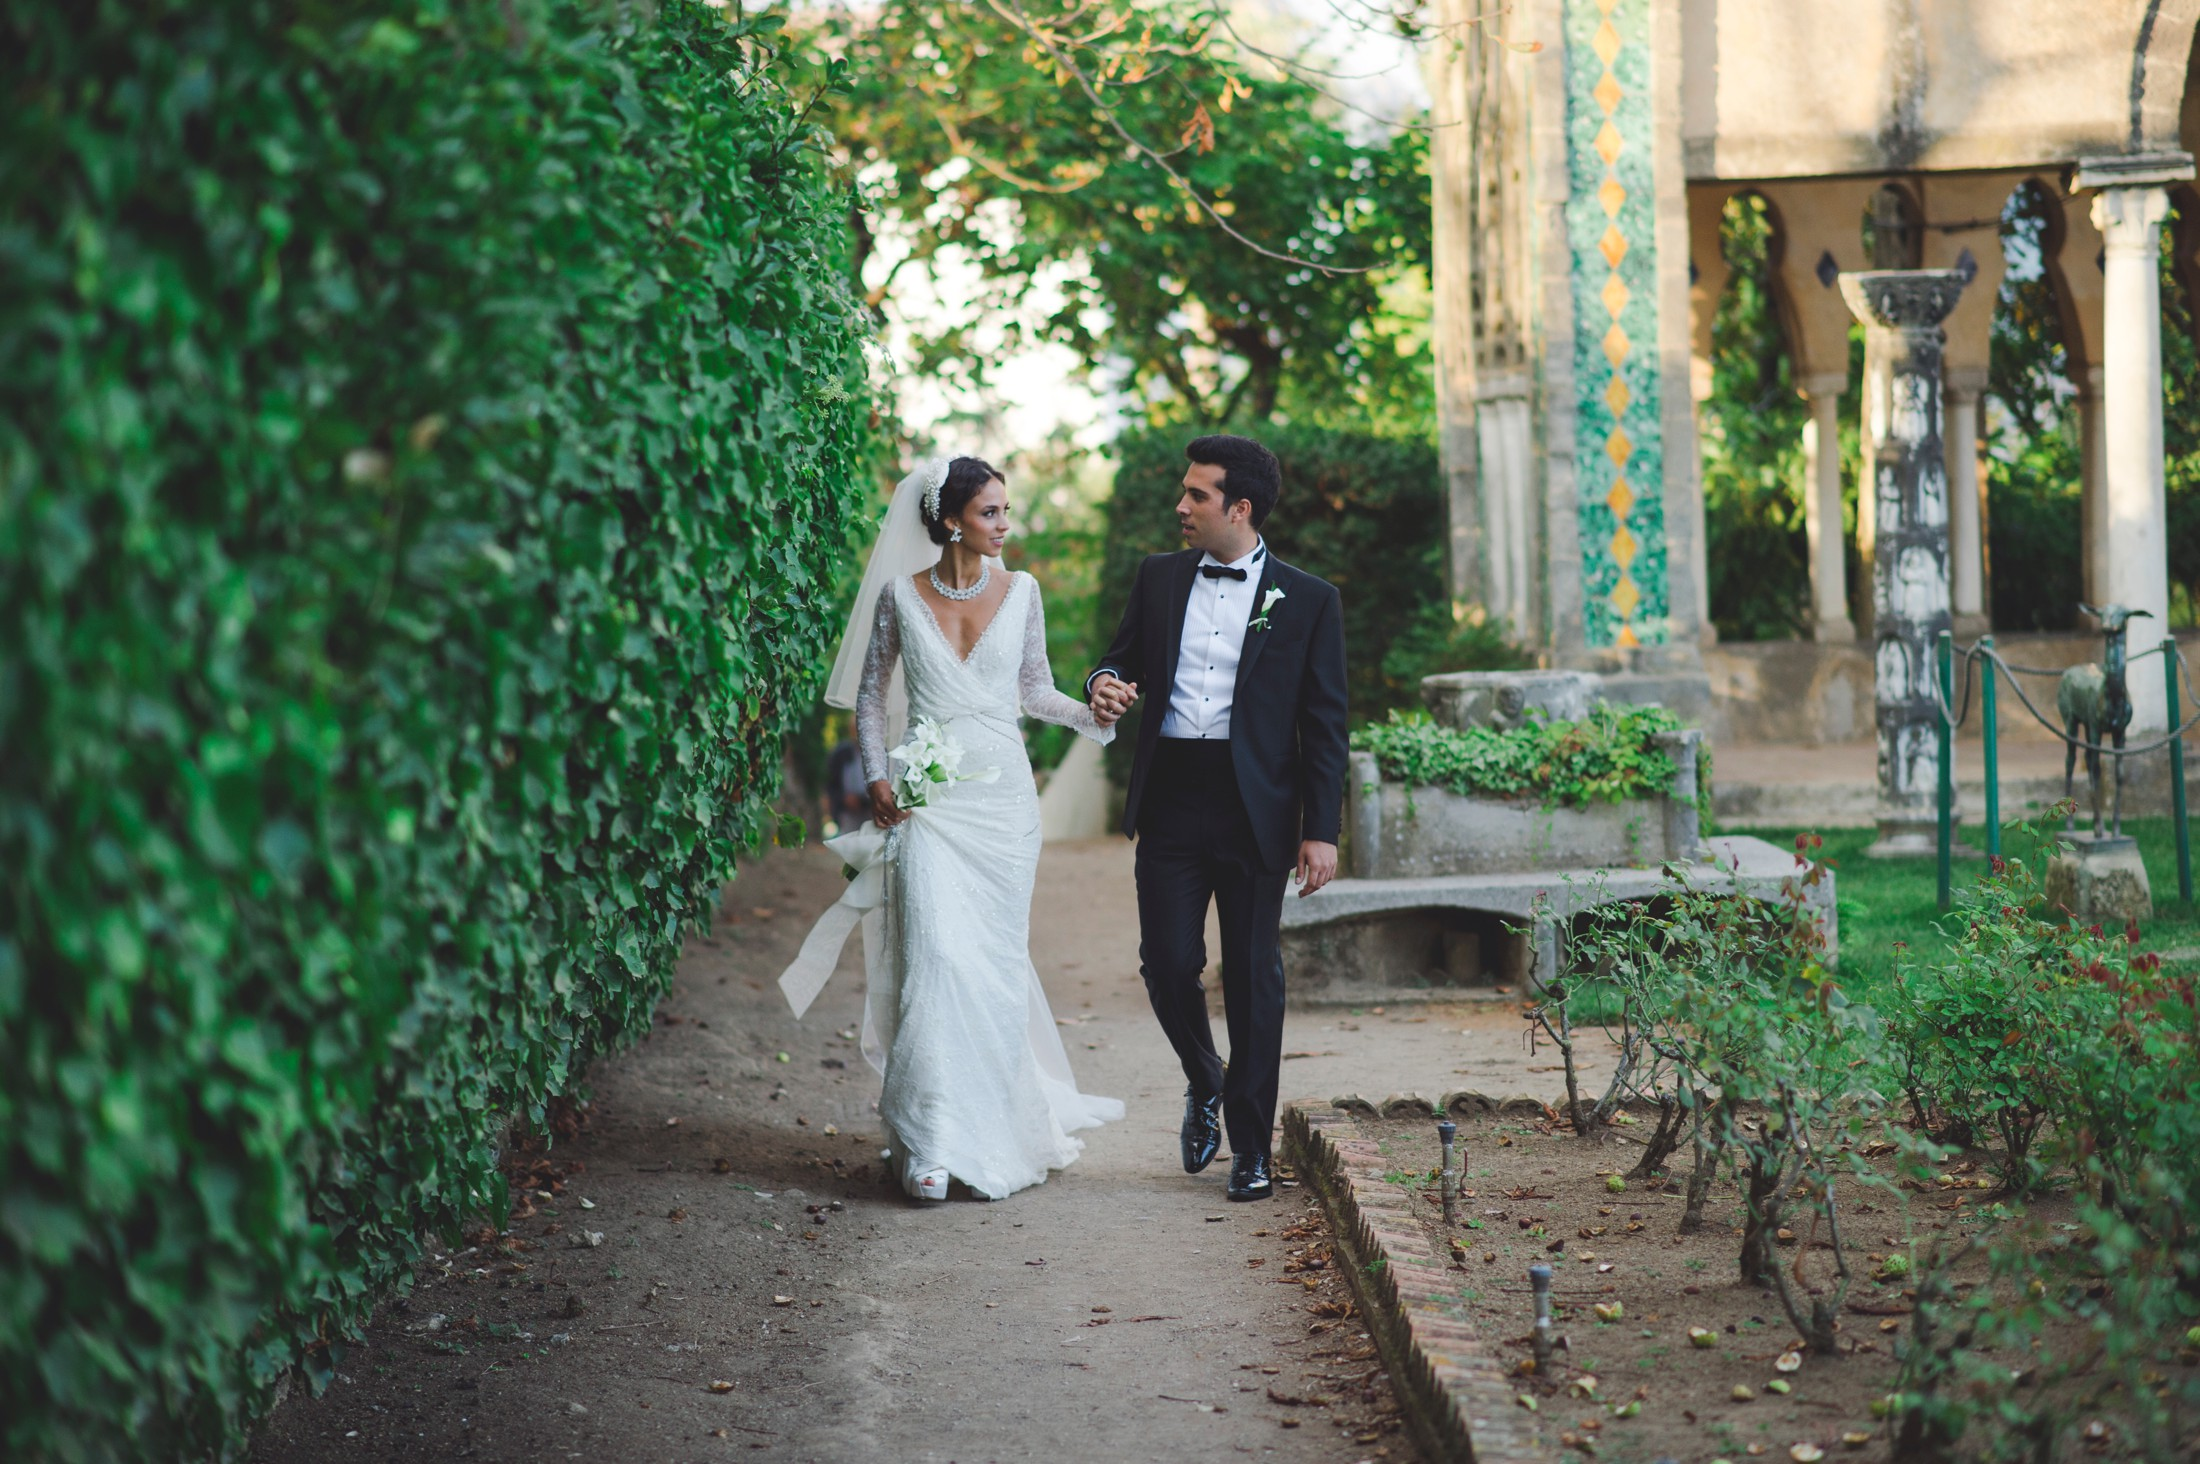 the bride walks with her brother to the ceremony